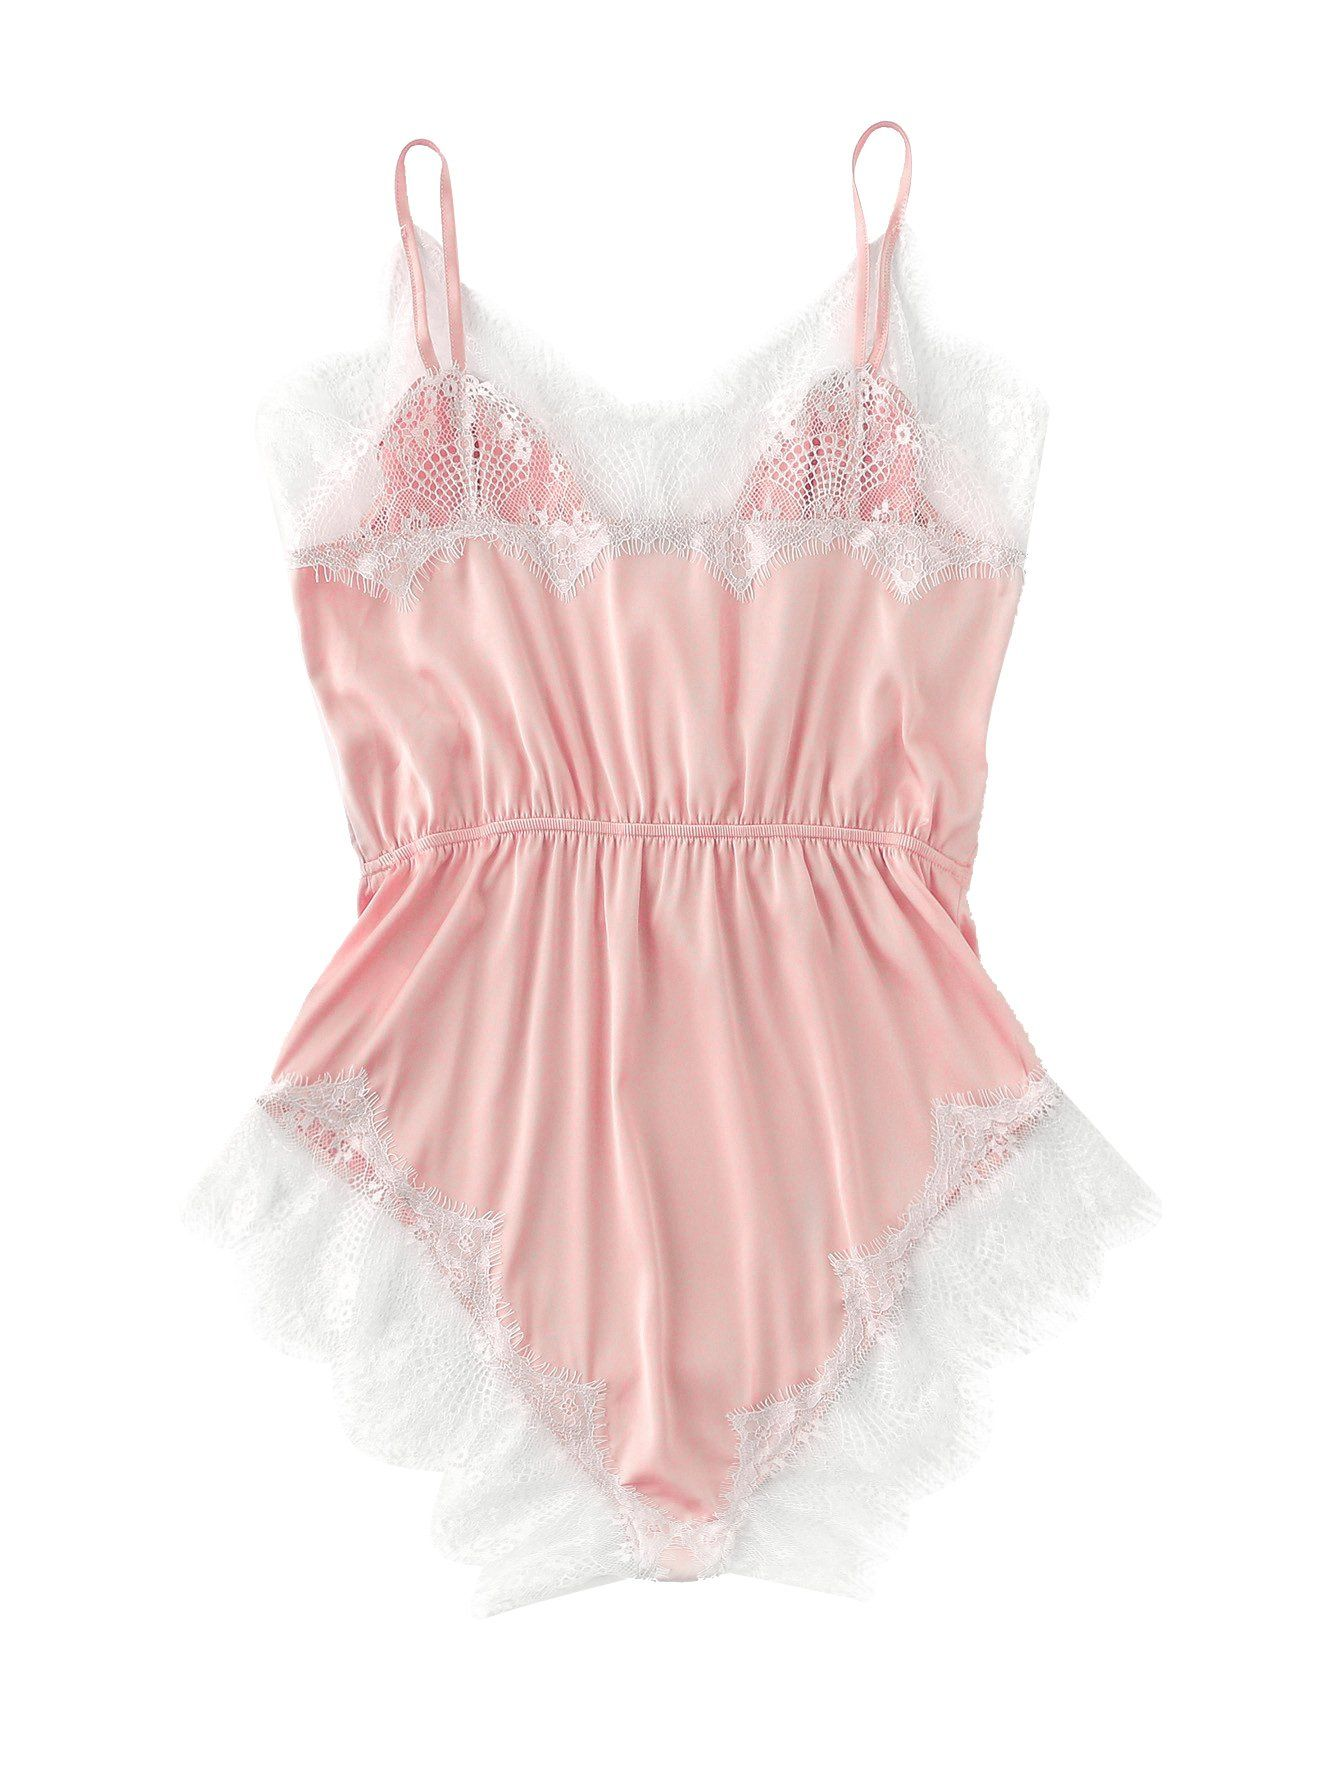 1fccfb4d05 SweatyRocks Womens V Neck Nightwear Lace Romper Pajamas Sexy Sleepwear  Romper Lingerie Pink XS    You can get more details by clicking on the  image.